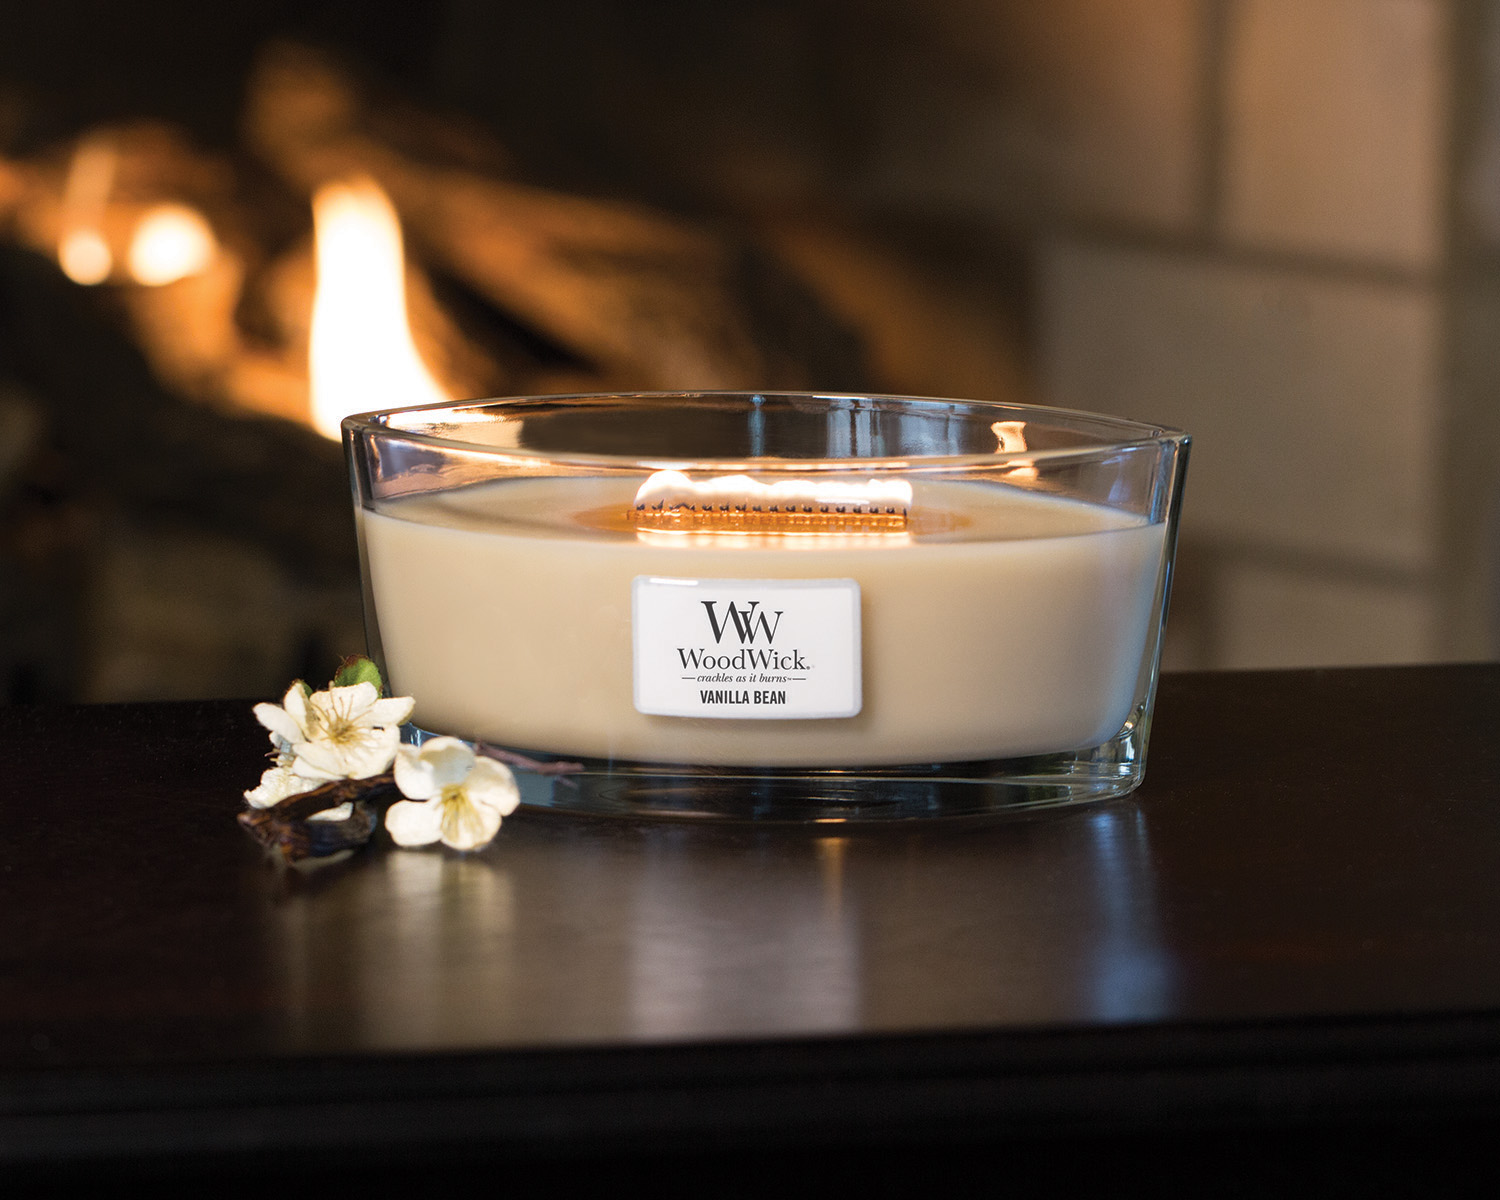 Send a FREE WoodWick Candle to a friend!